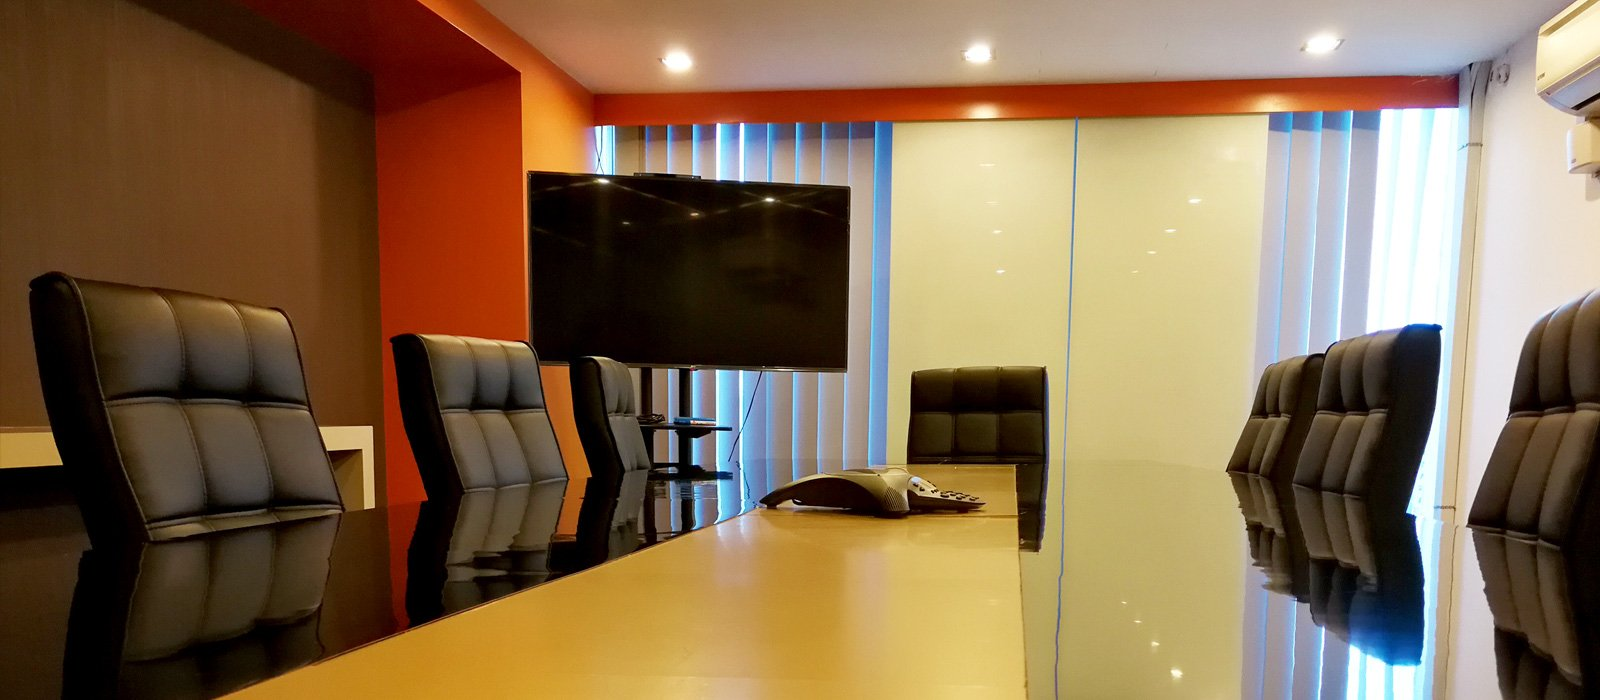 Meeting Room - Making meeting easy